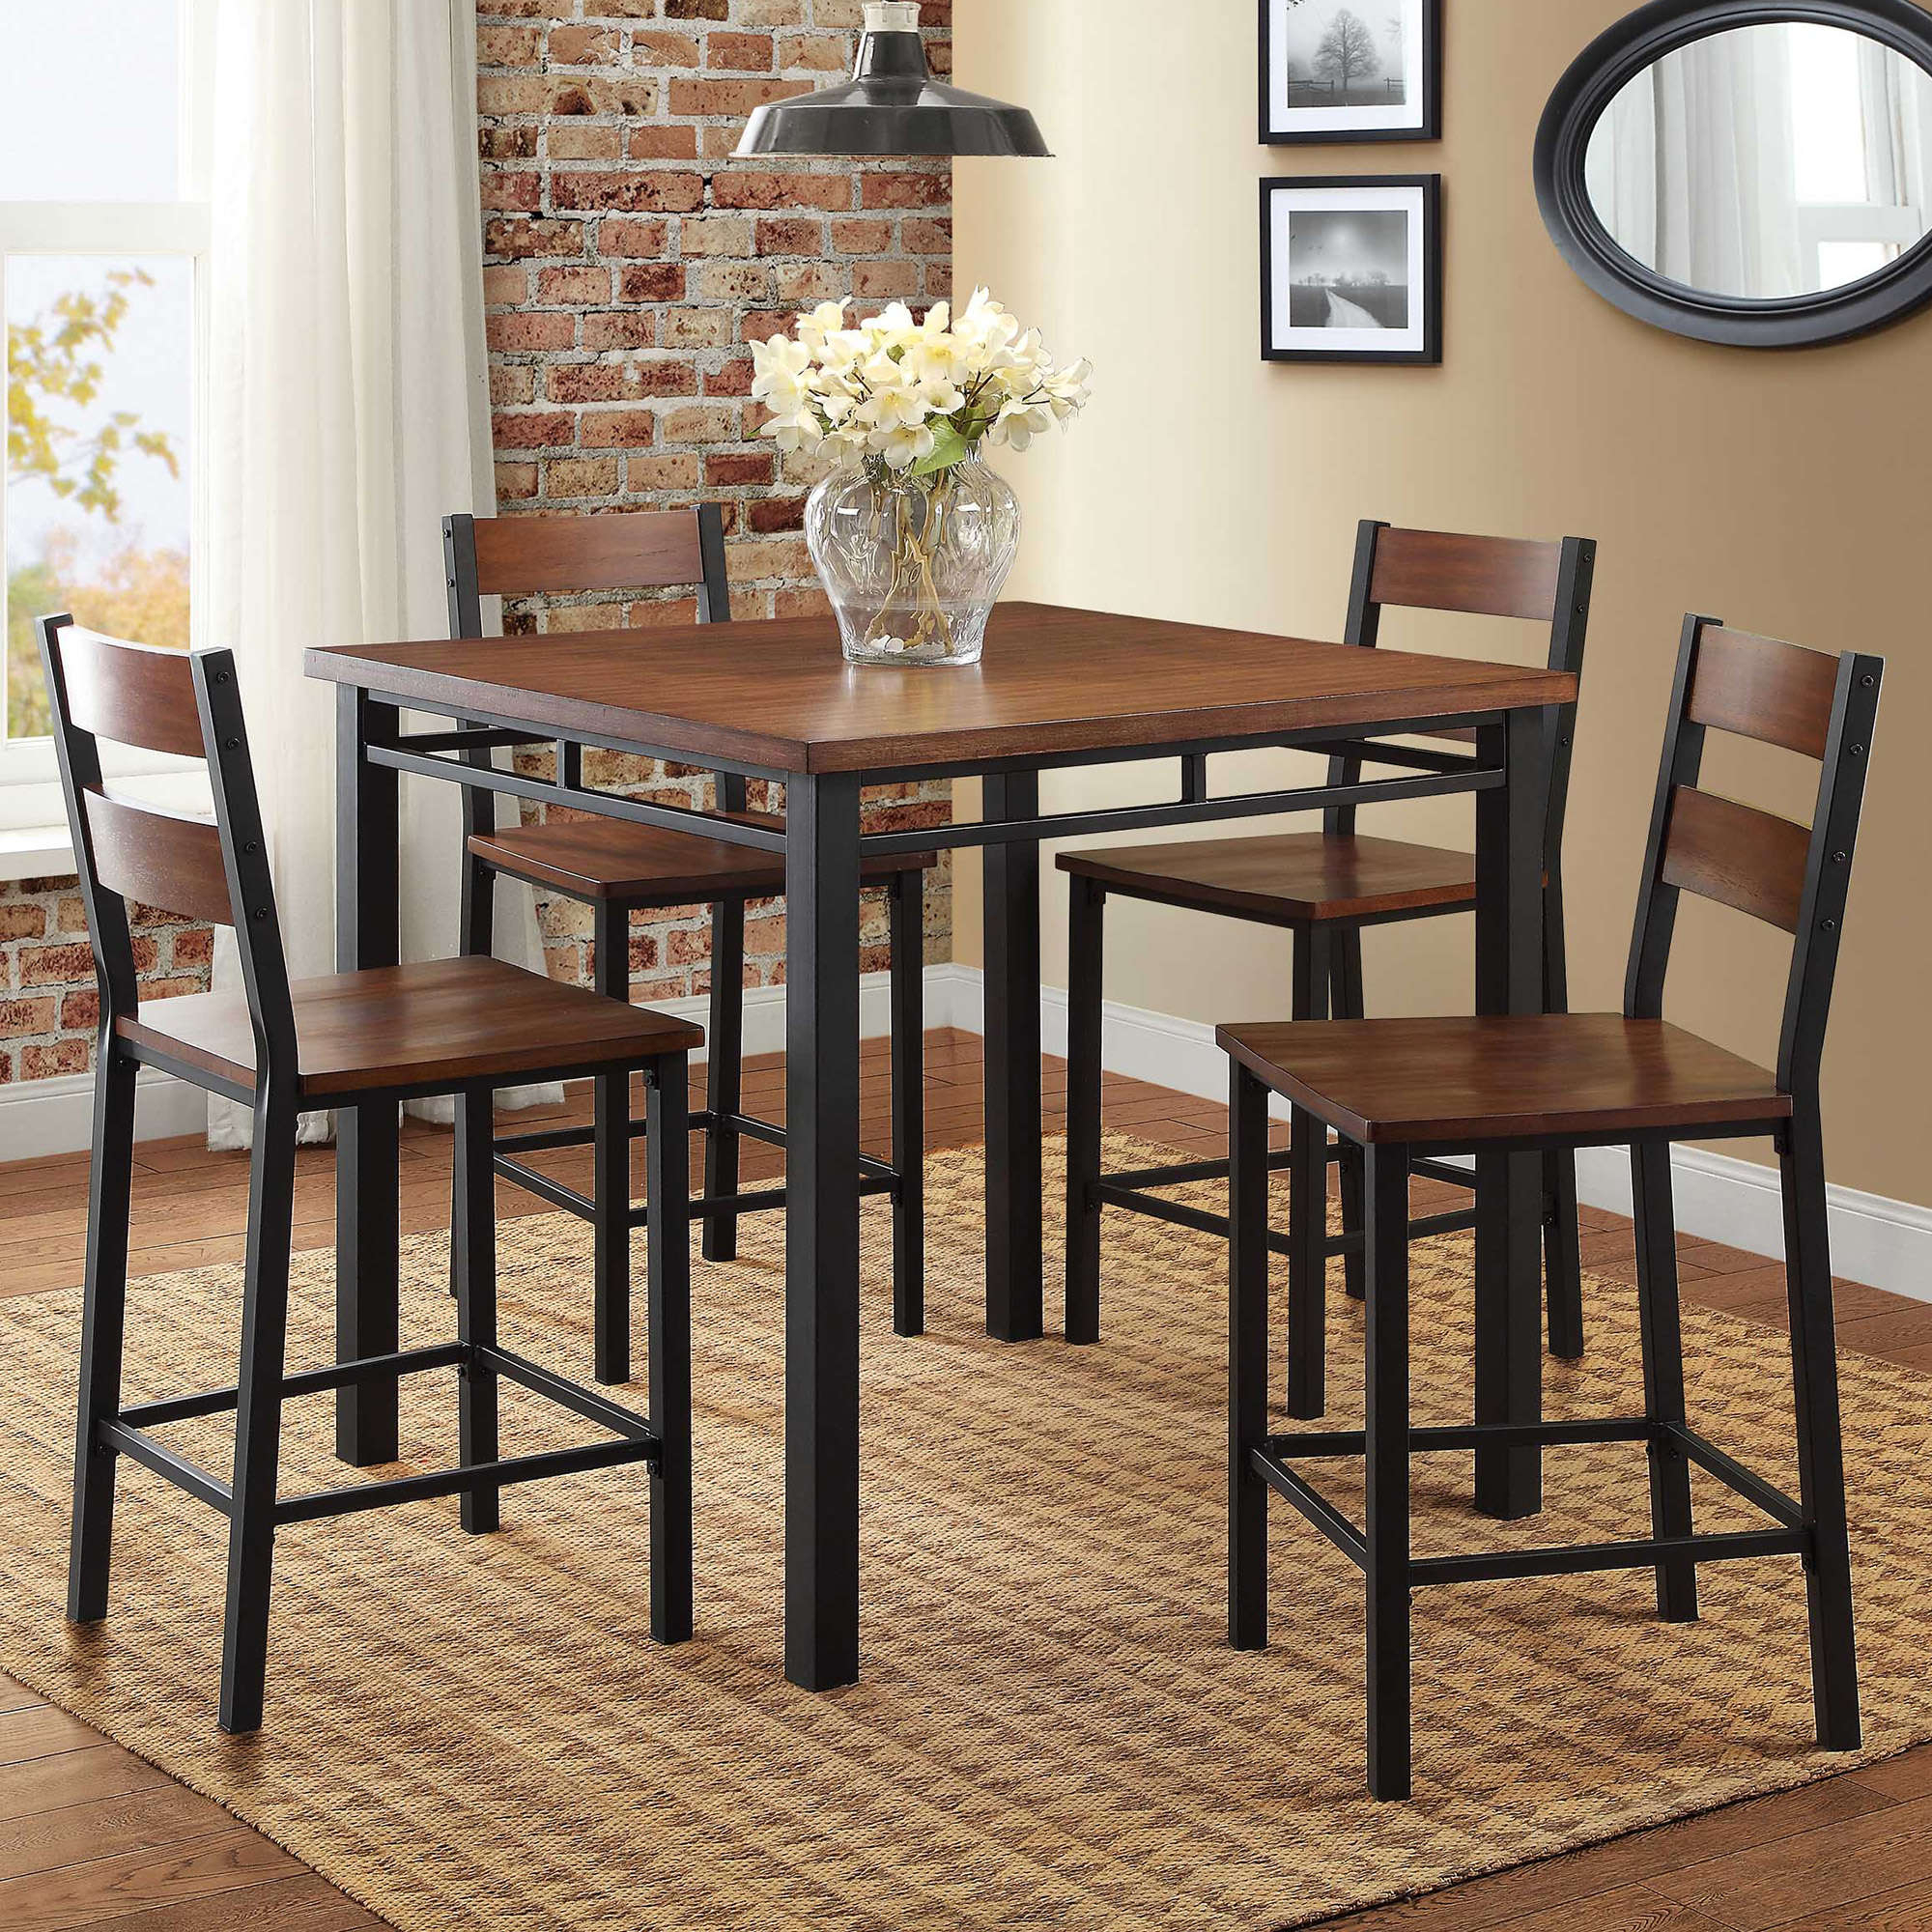 5 Piece Breakfast Nook Dining Sets Throughout Best And Newest Rustic Dining Table Set High Top Counter Height Chair Kitchen Nook  (View 13 of 25)